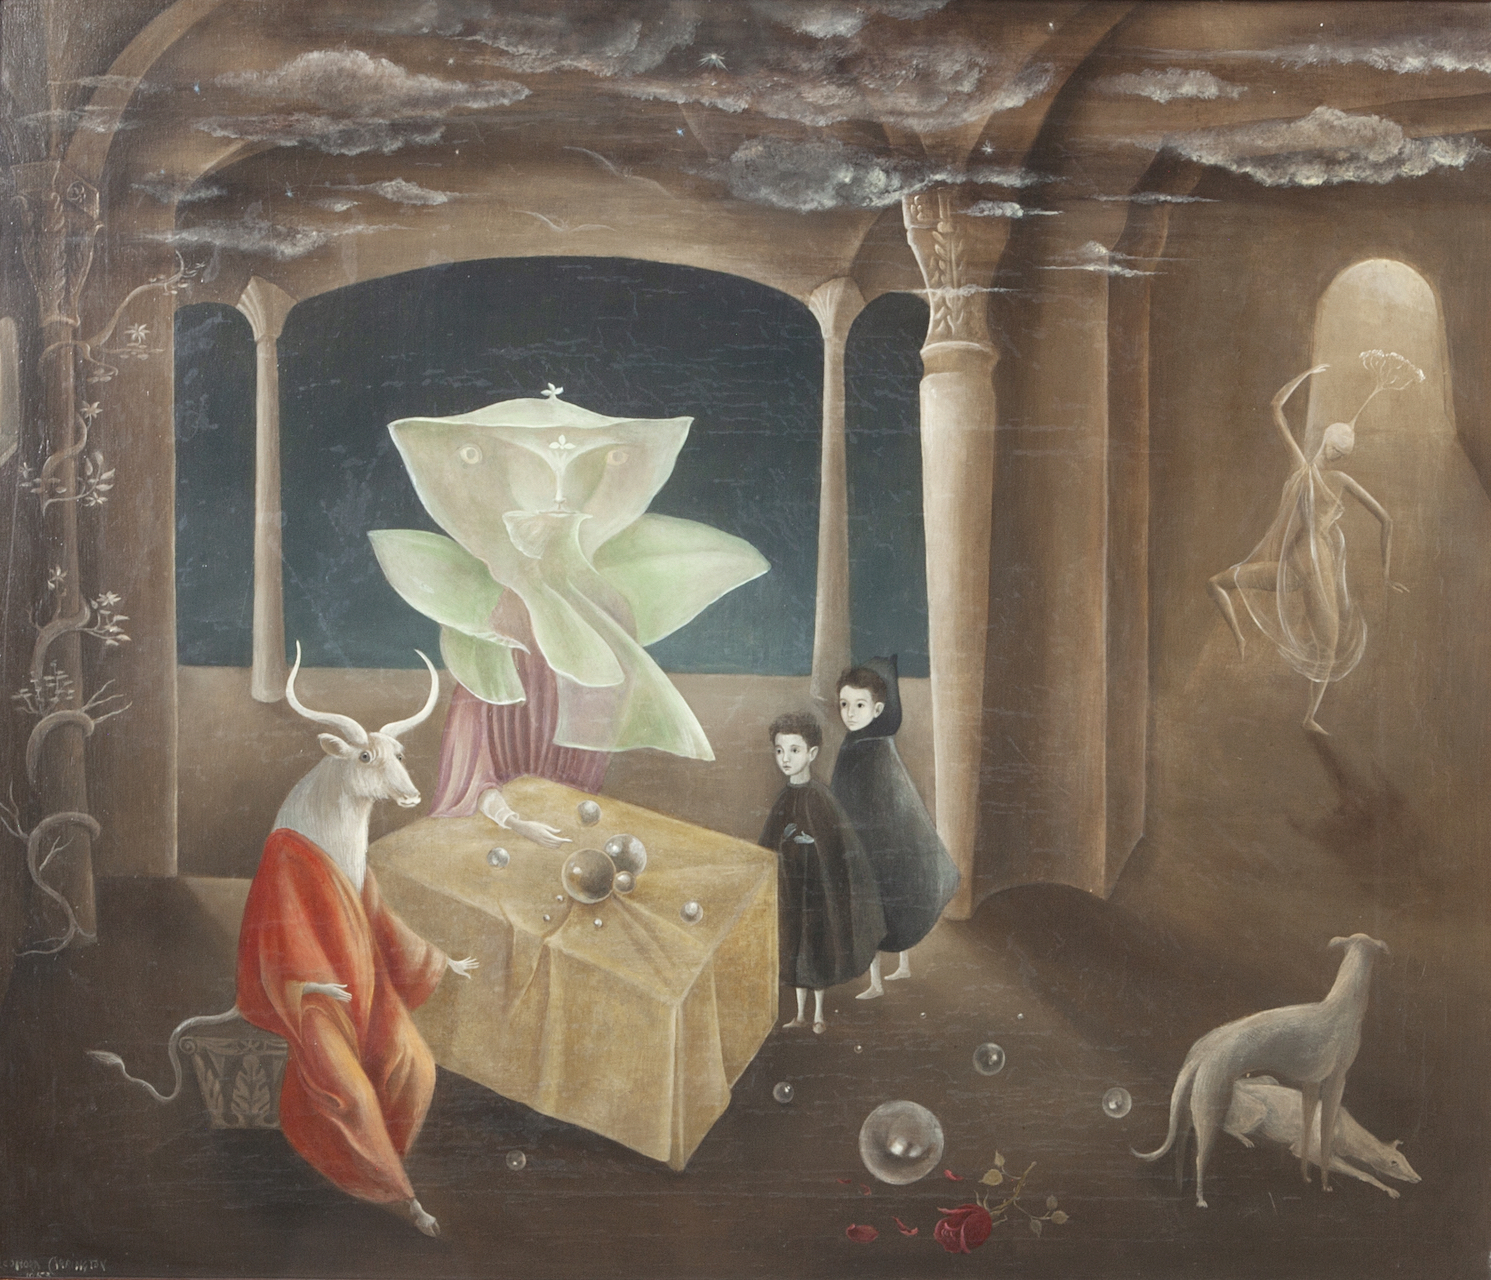 "Leonora Carrington's fantastical figures emerge in the 1953 painting ""And Then We Saw the Daughter of the Minotaur"" at Gallery Wendi Norris: a seated goddess-cum-mystical figure with a cow's head and a green moth-flower unfurling like a gigantic leaf.  Estate of Leonora Carrington/Artists Rights Society (ARS), New York; via Gallery Wendi Norris"